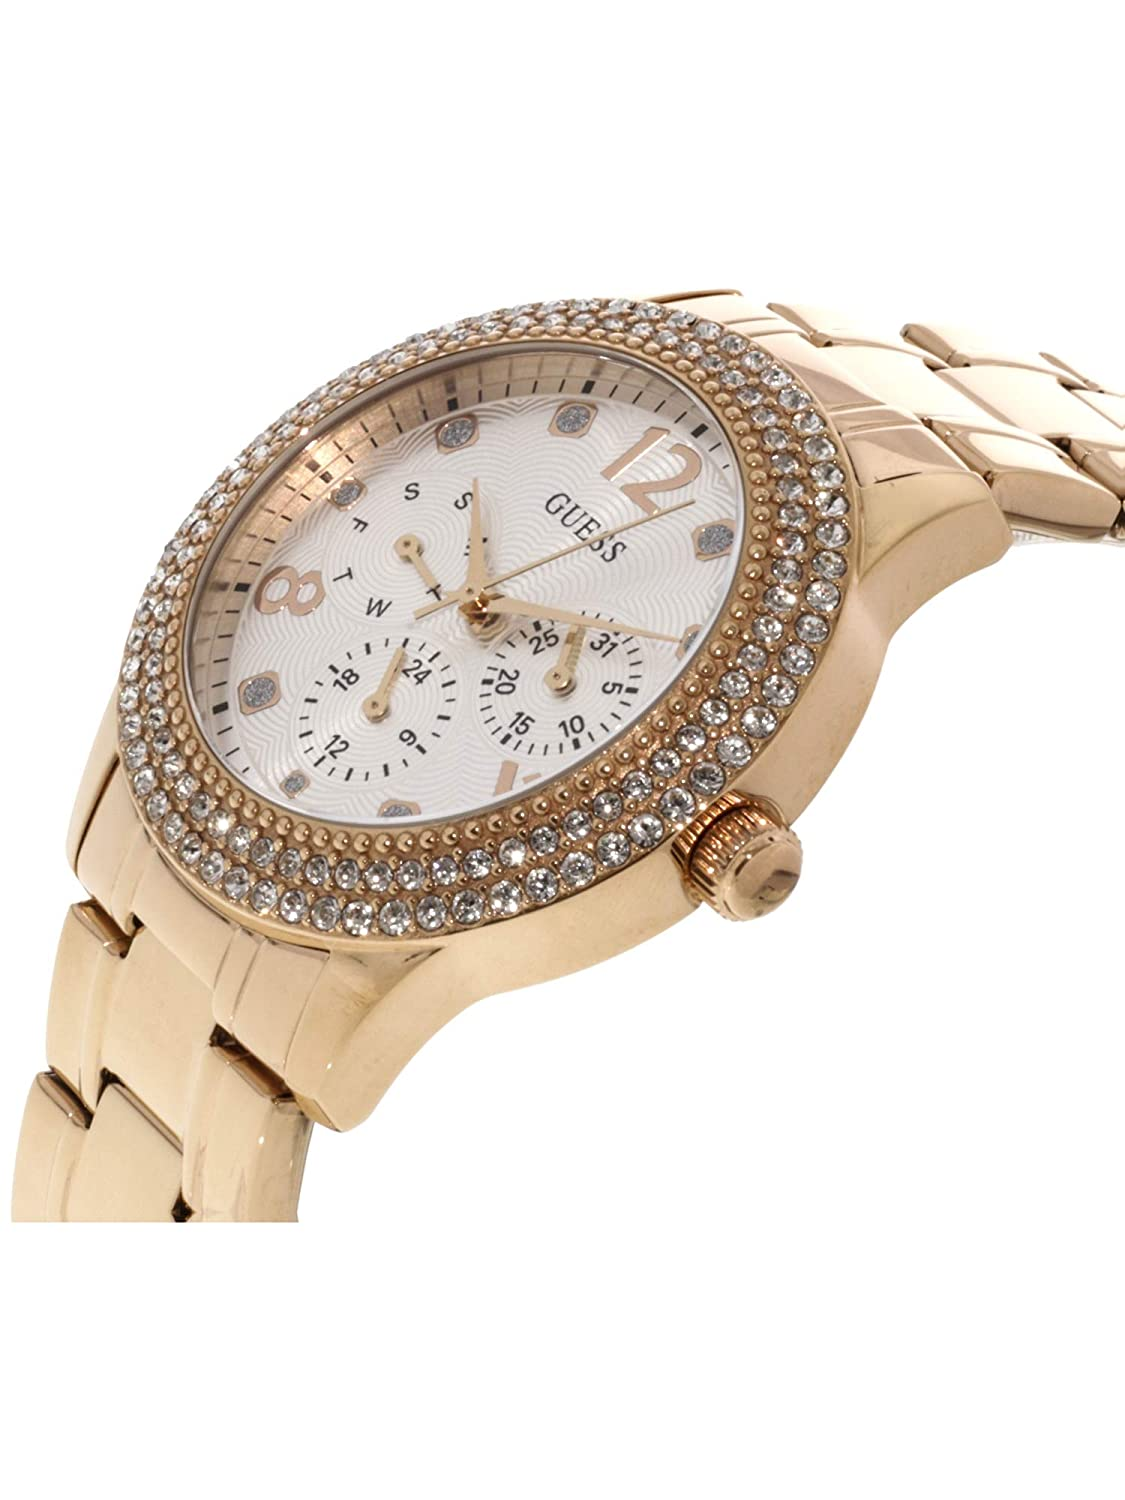 Amazon.com: Guess Bedazzle Rose Gold Dial Stainless Steel Ladies Watch W1097L3: Guess: Watches